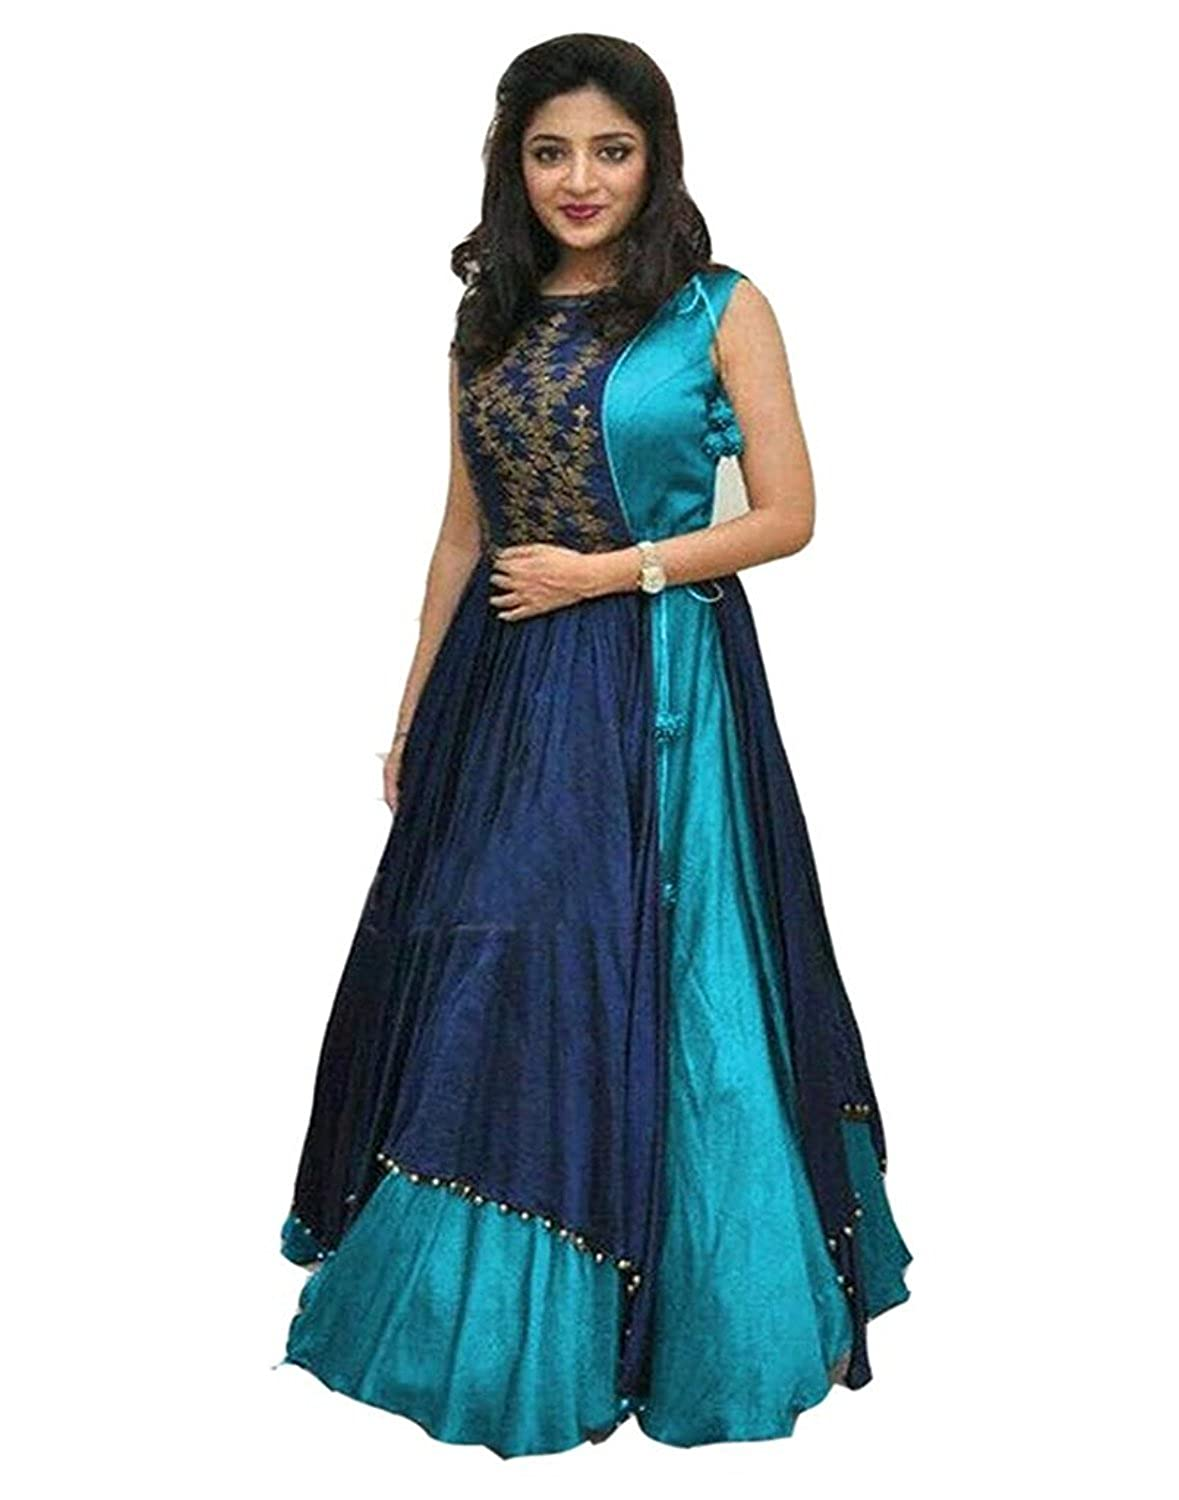 Buy The Great Indian Sale S New Fashion Designer Fancy Wear Low Price Todays Special Deal Offer Seven Star Creation Women S Lehenga Choli Vc 0011 Color Blue Free Size At Amazon In